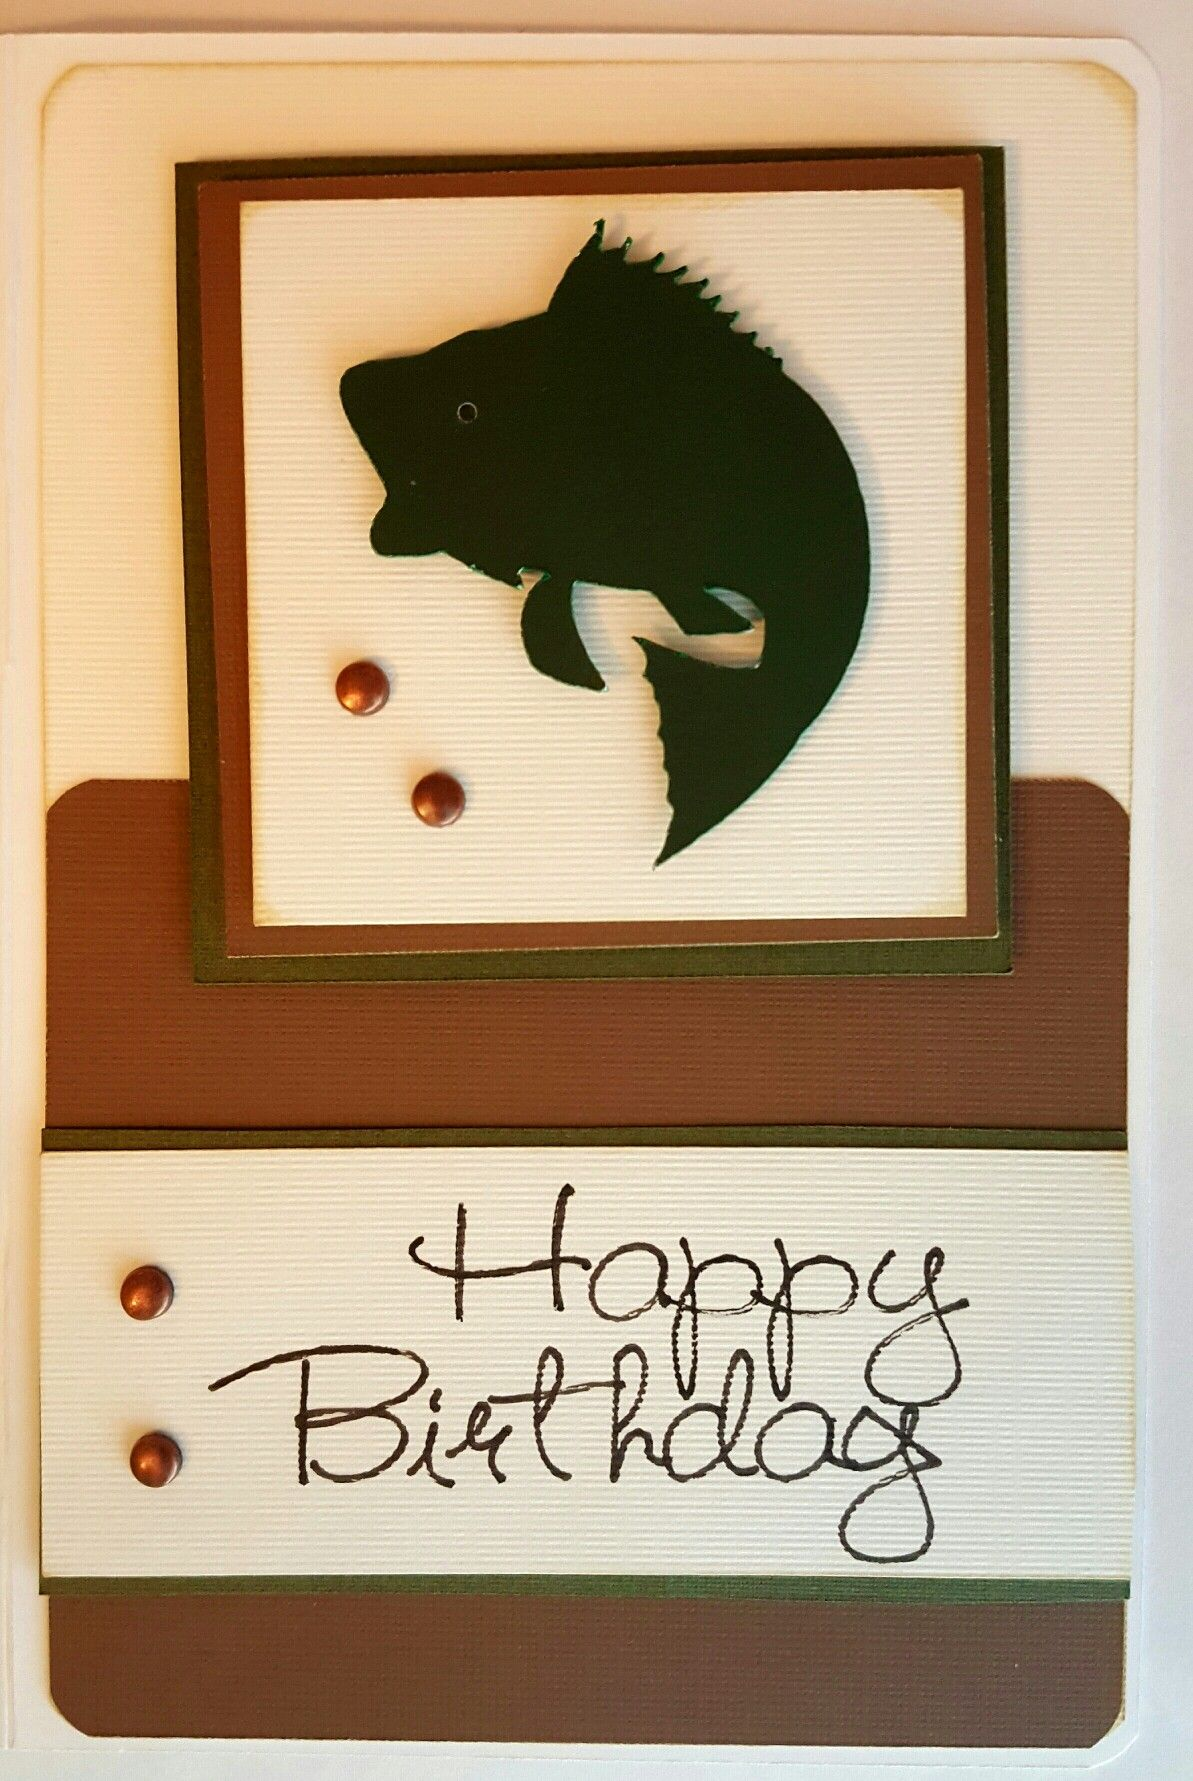 Cricut Birthday Card With Bass Fish On Front For The Men Cricut Birthday Fishing Birthday Cards Cricut Birthday Cards